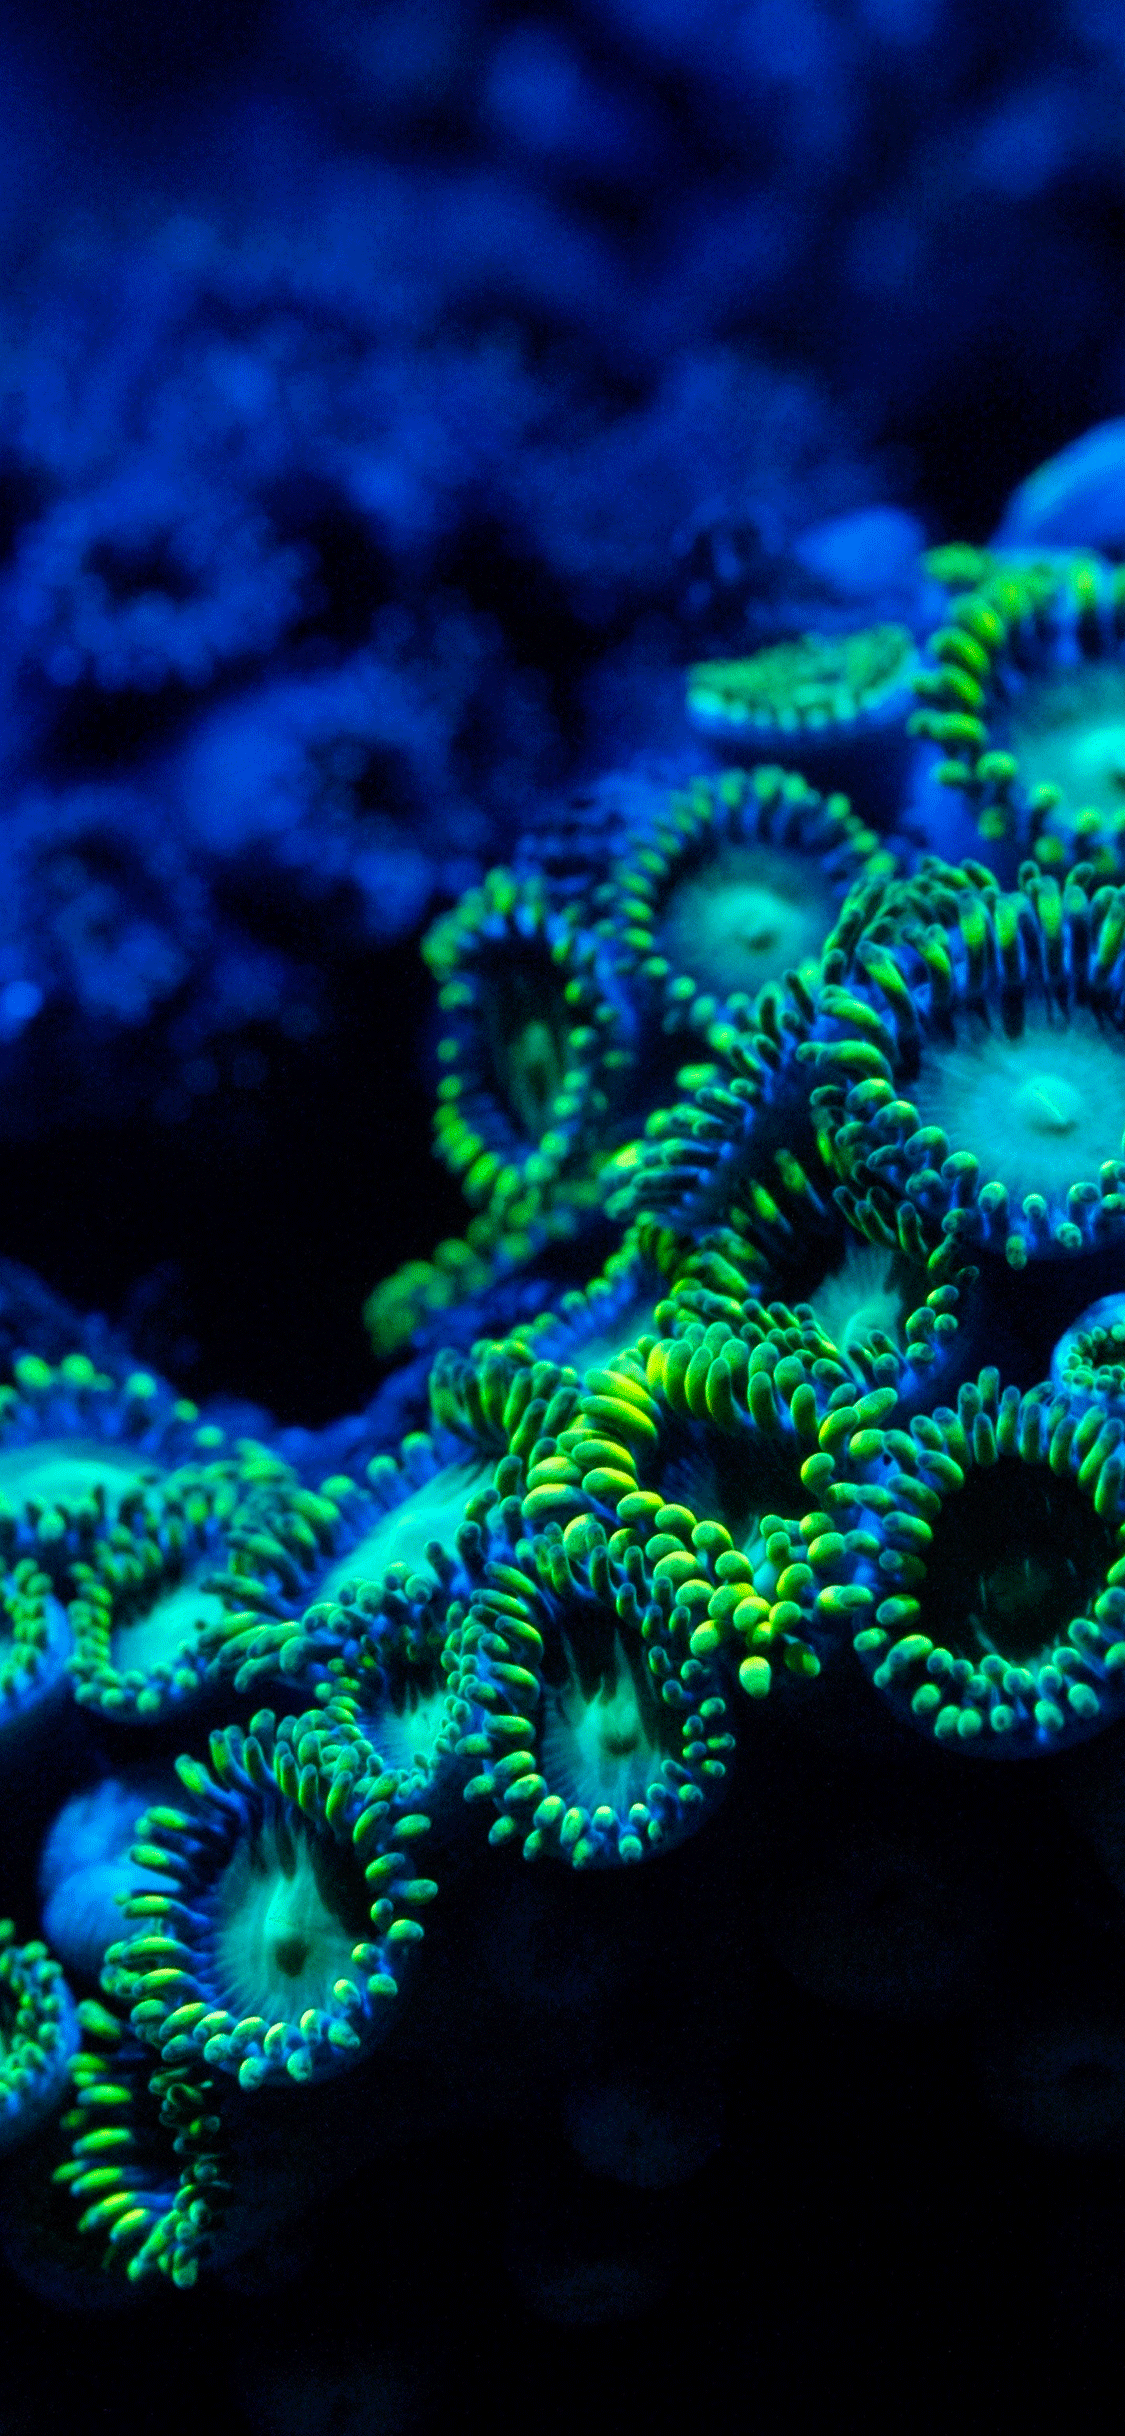 iPhone wallpaper coral reef 1 Coral Reef